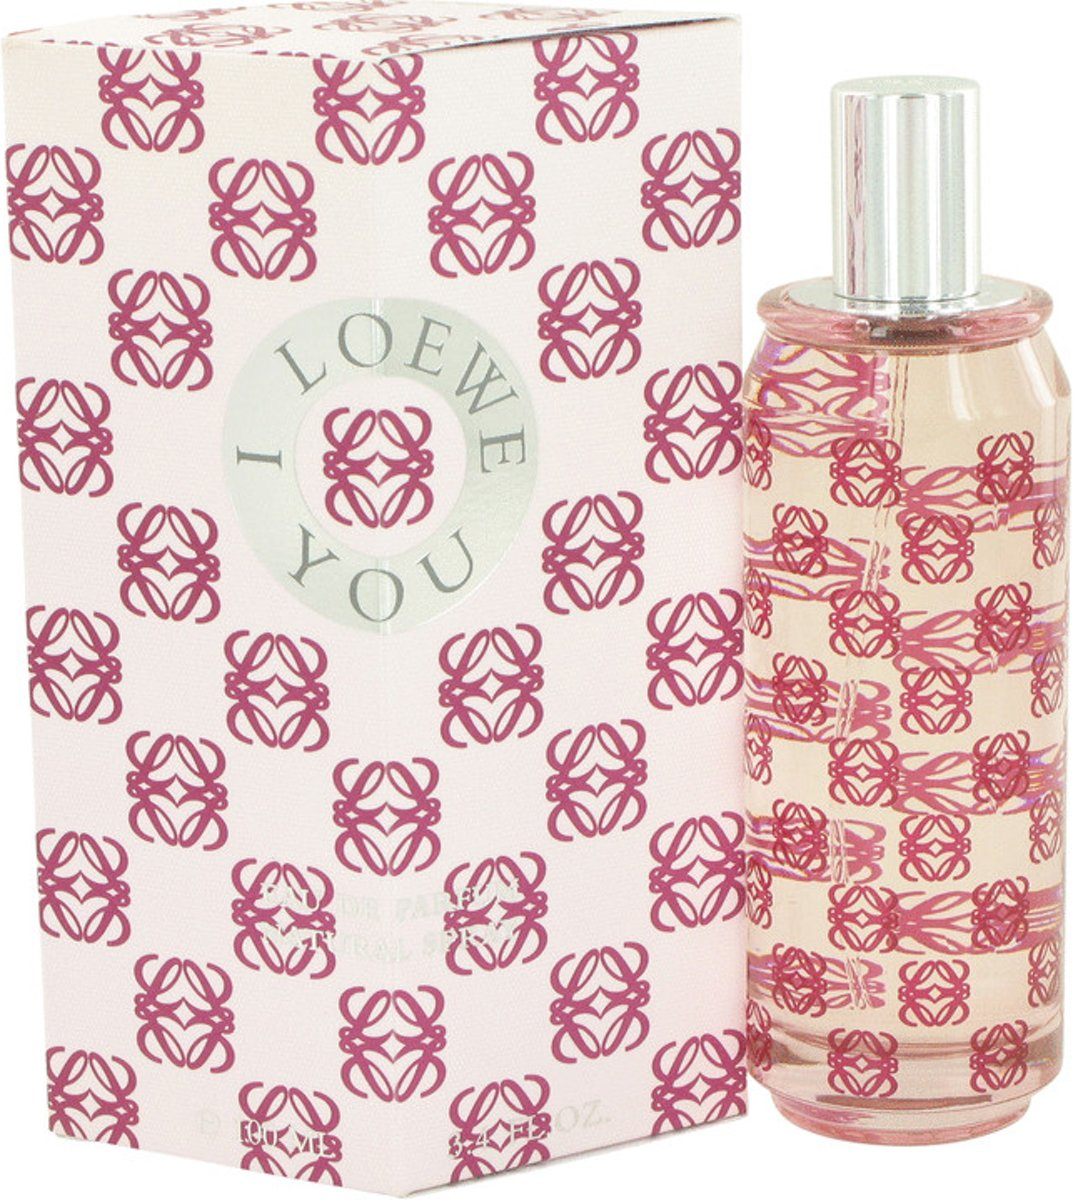 Loewe I You 100 ml - Eau De Parfum Spray Women